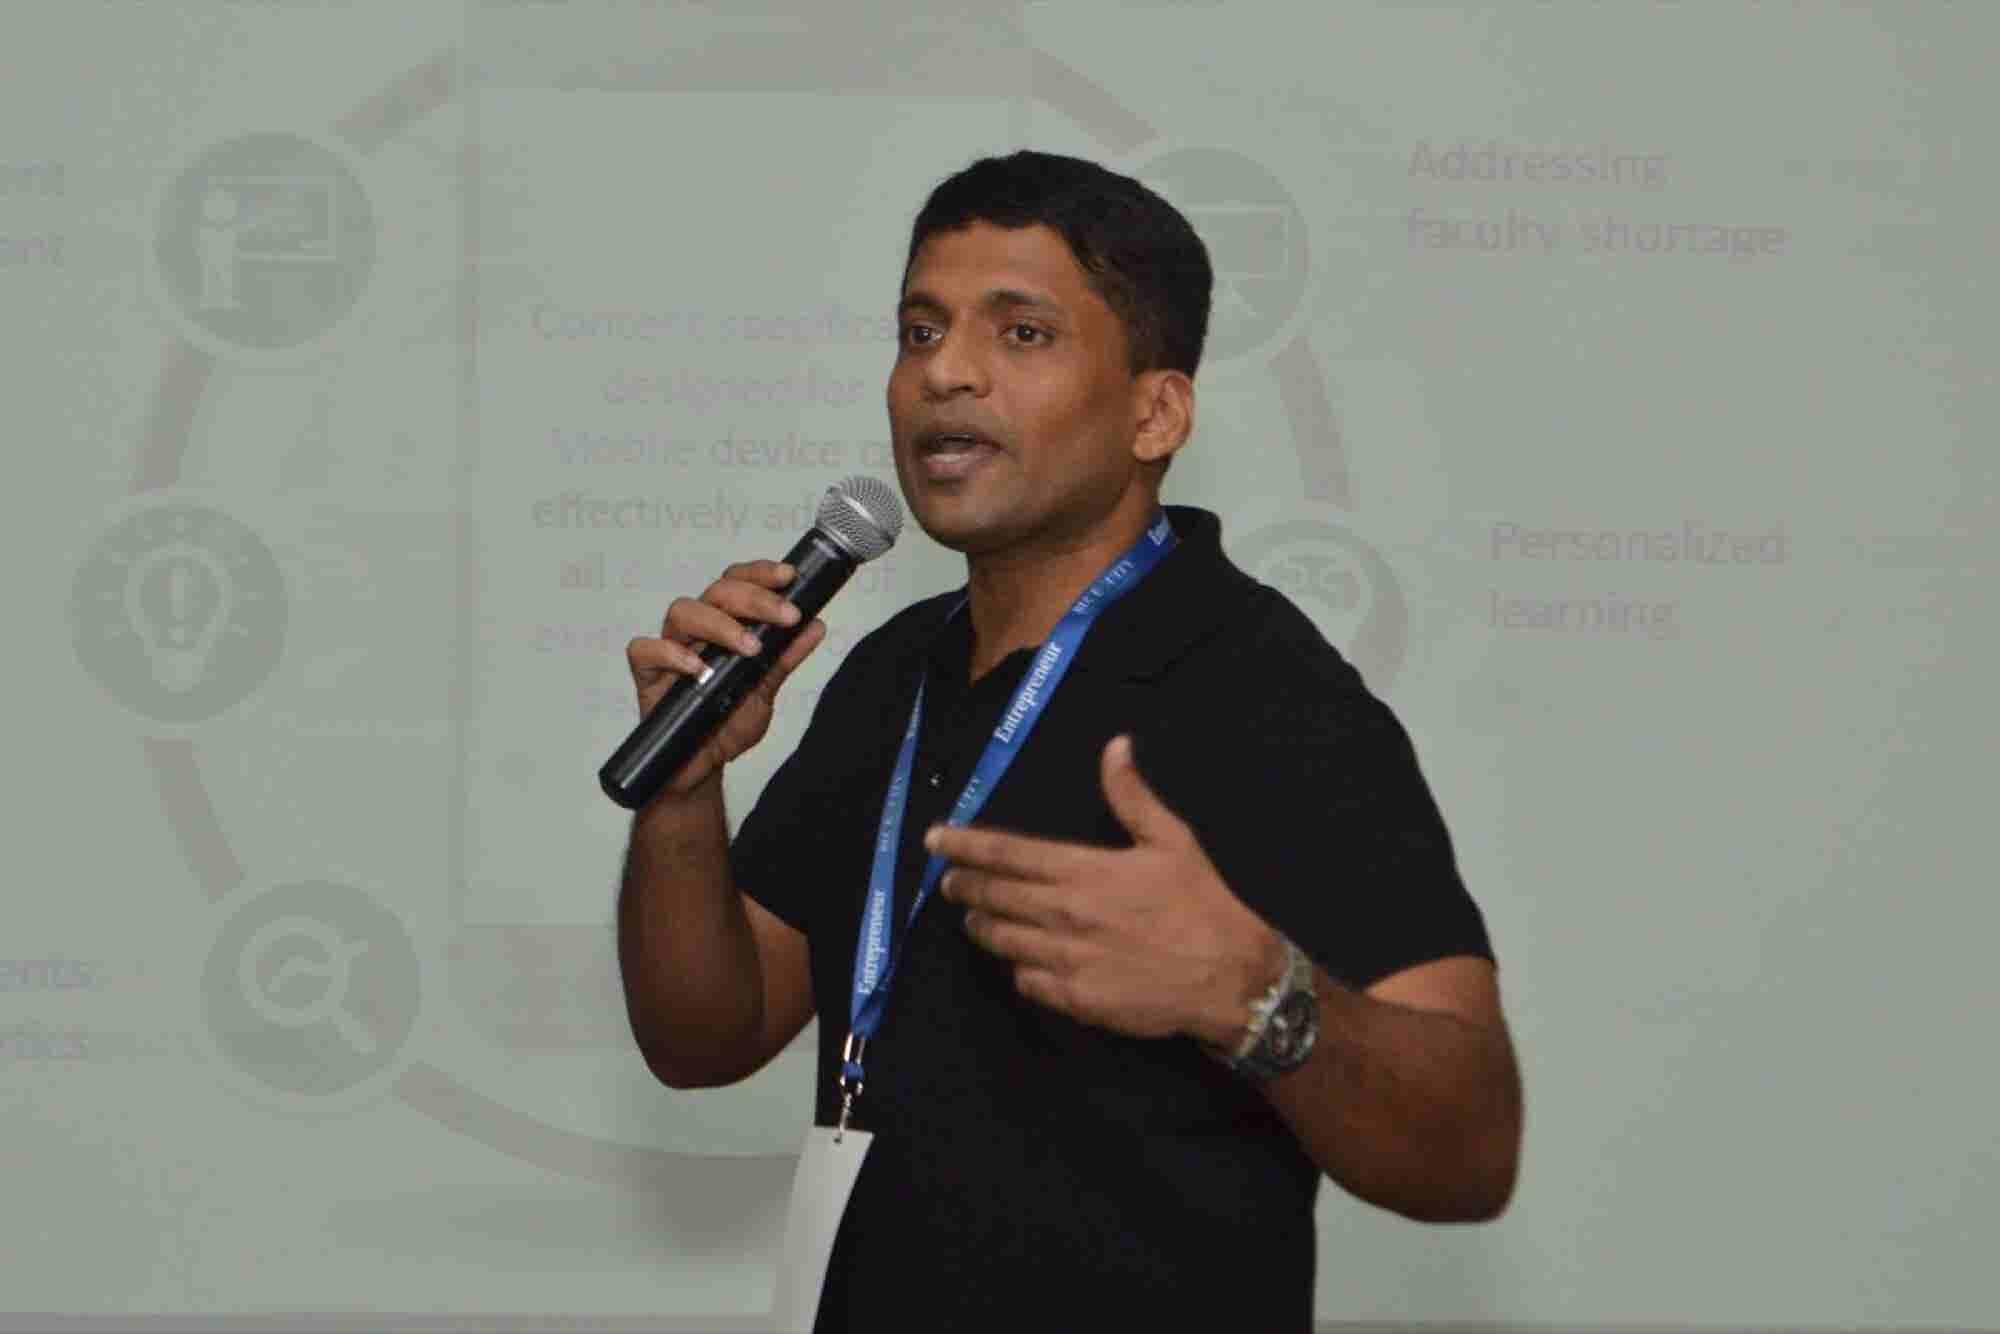 Byju Scoops Out $50 Million From Mark Zuckerberg's Foundation, Sequoia Capital And Others